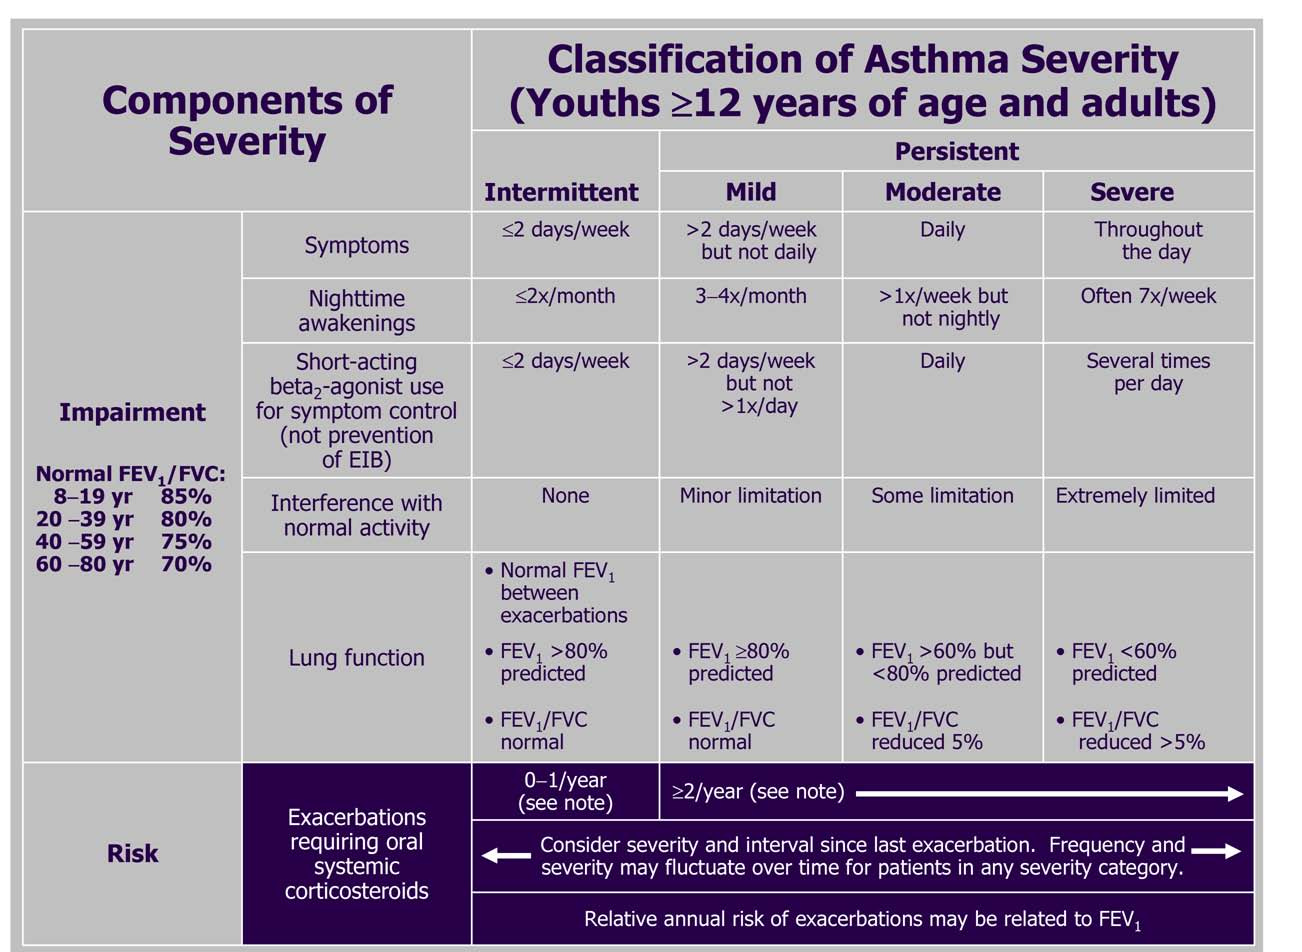 Asthma: Clinical Manifestations and Management - The ...